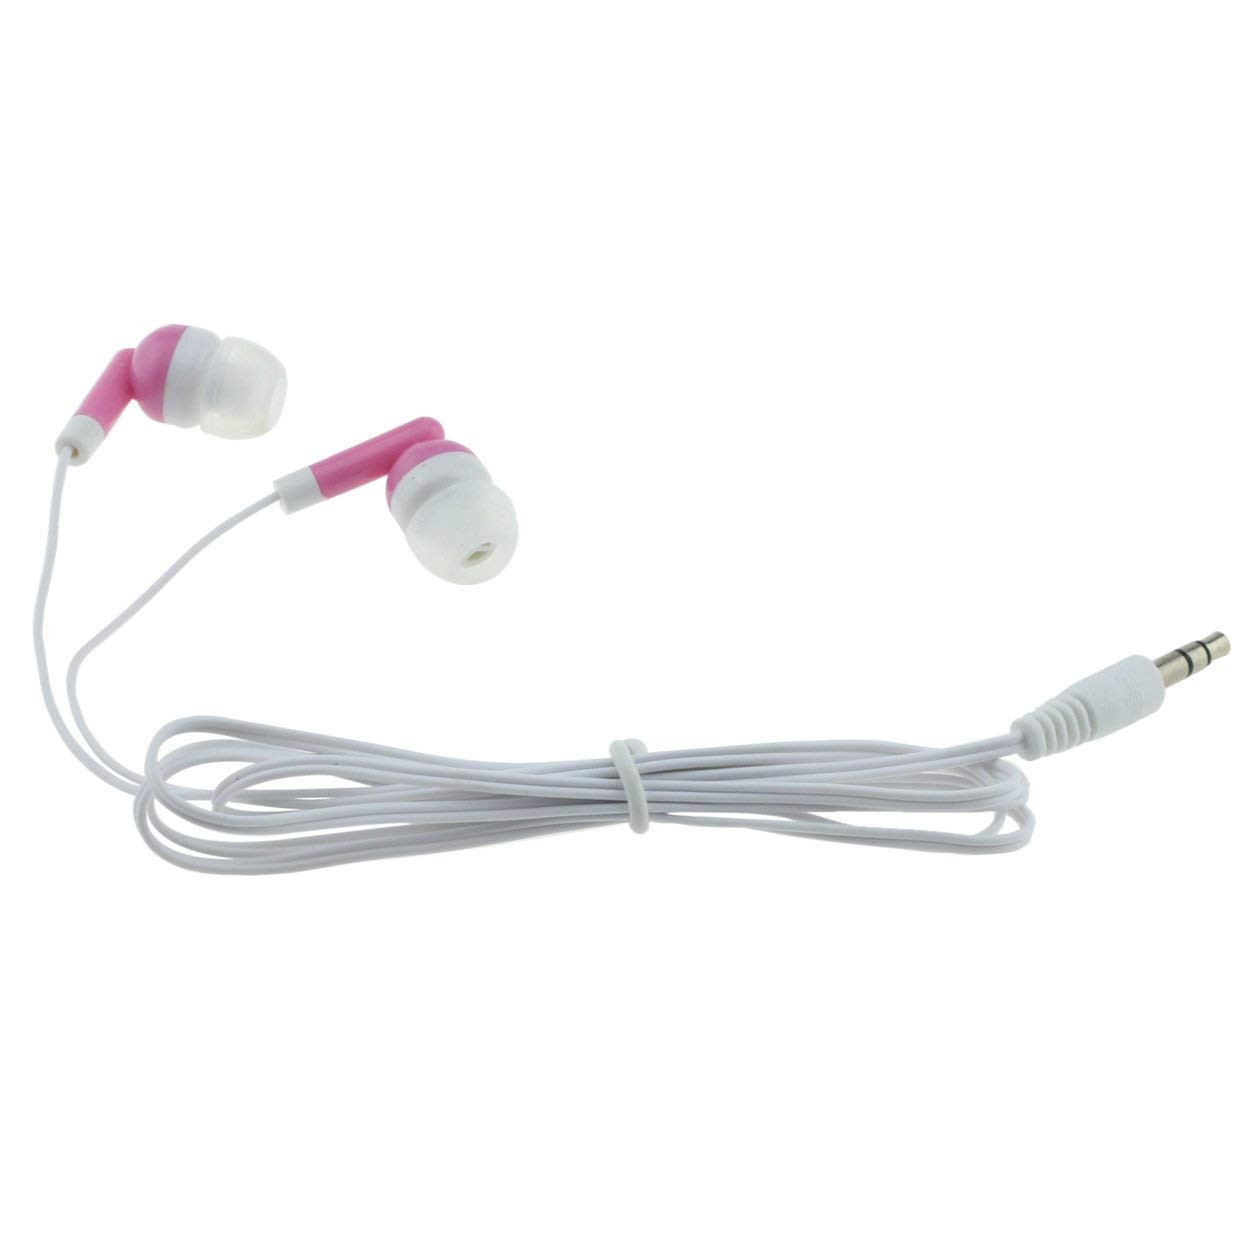 Wholesale Earbuds Bulk Headphones Individually Bagged 50 Pack For Iphone, Android, MP3 Player For Schools, Libraries, Hospitals (Pink)